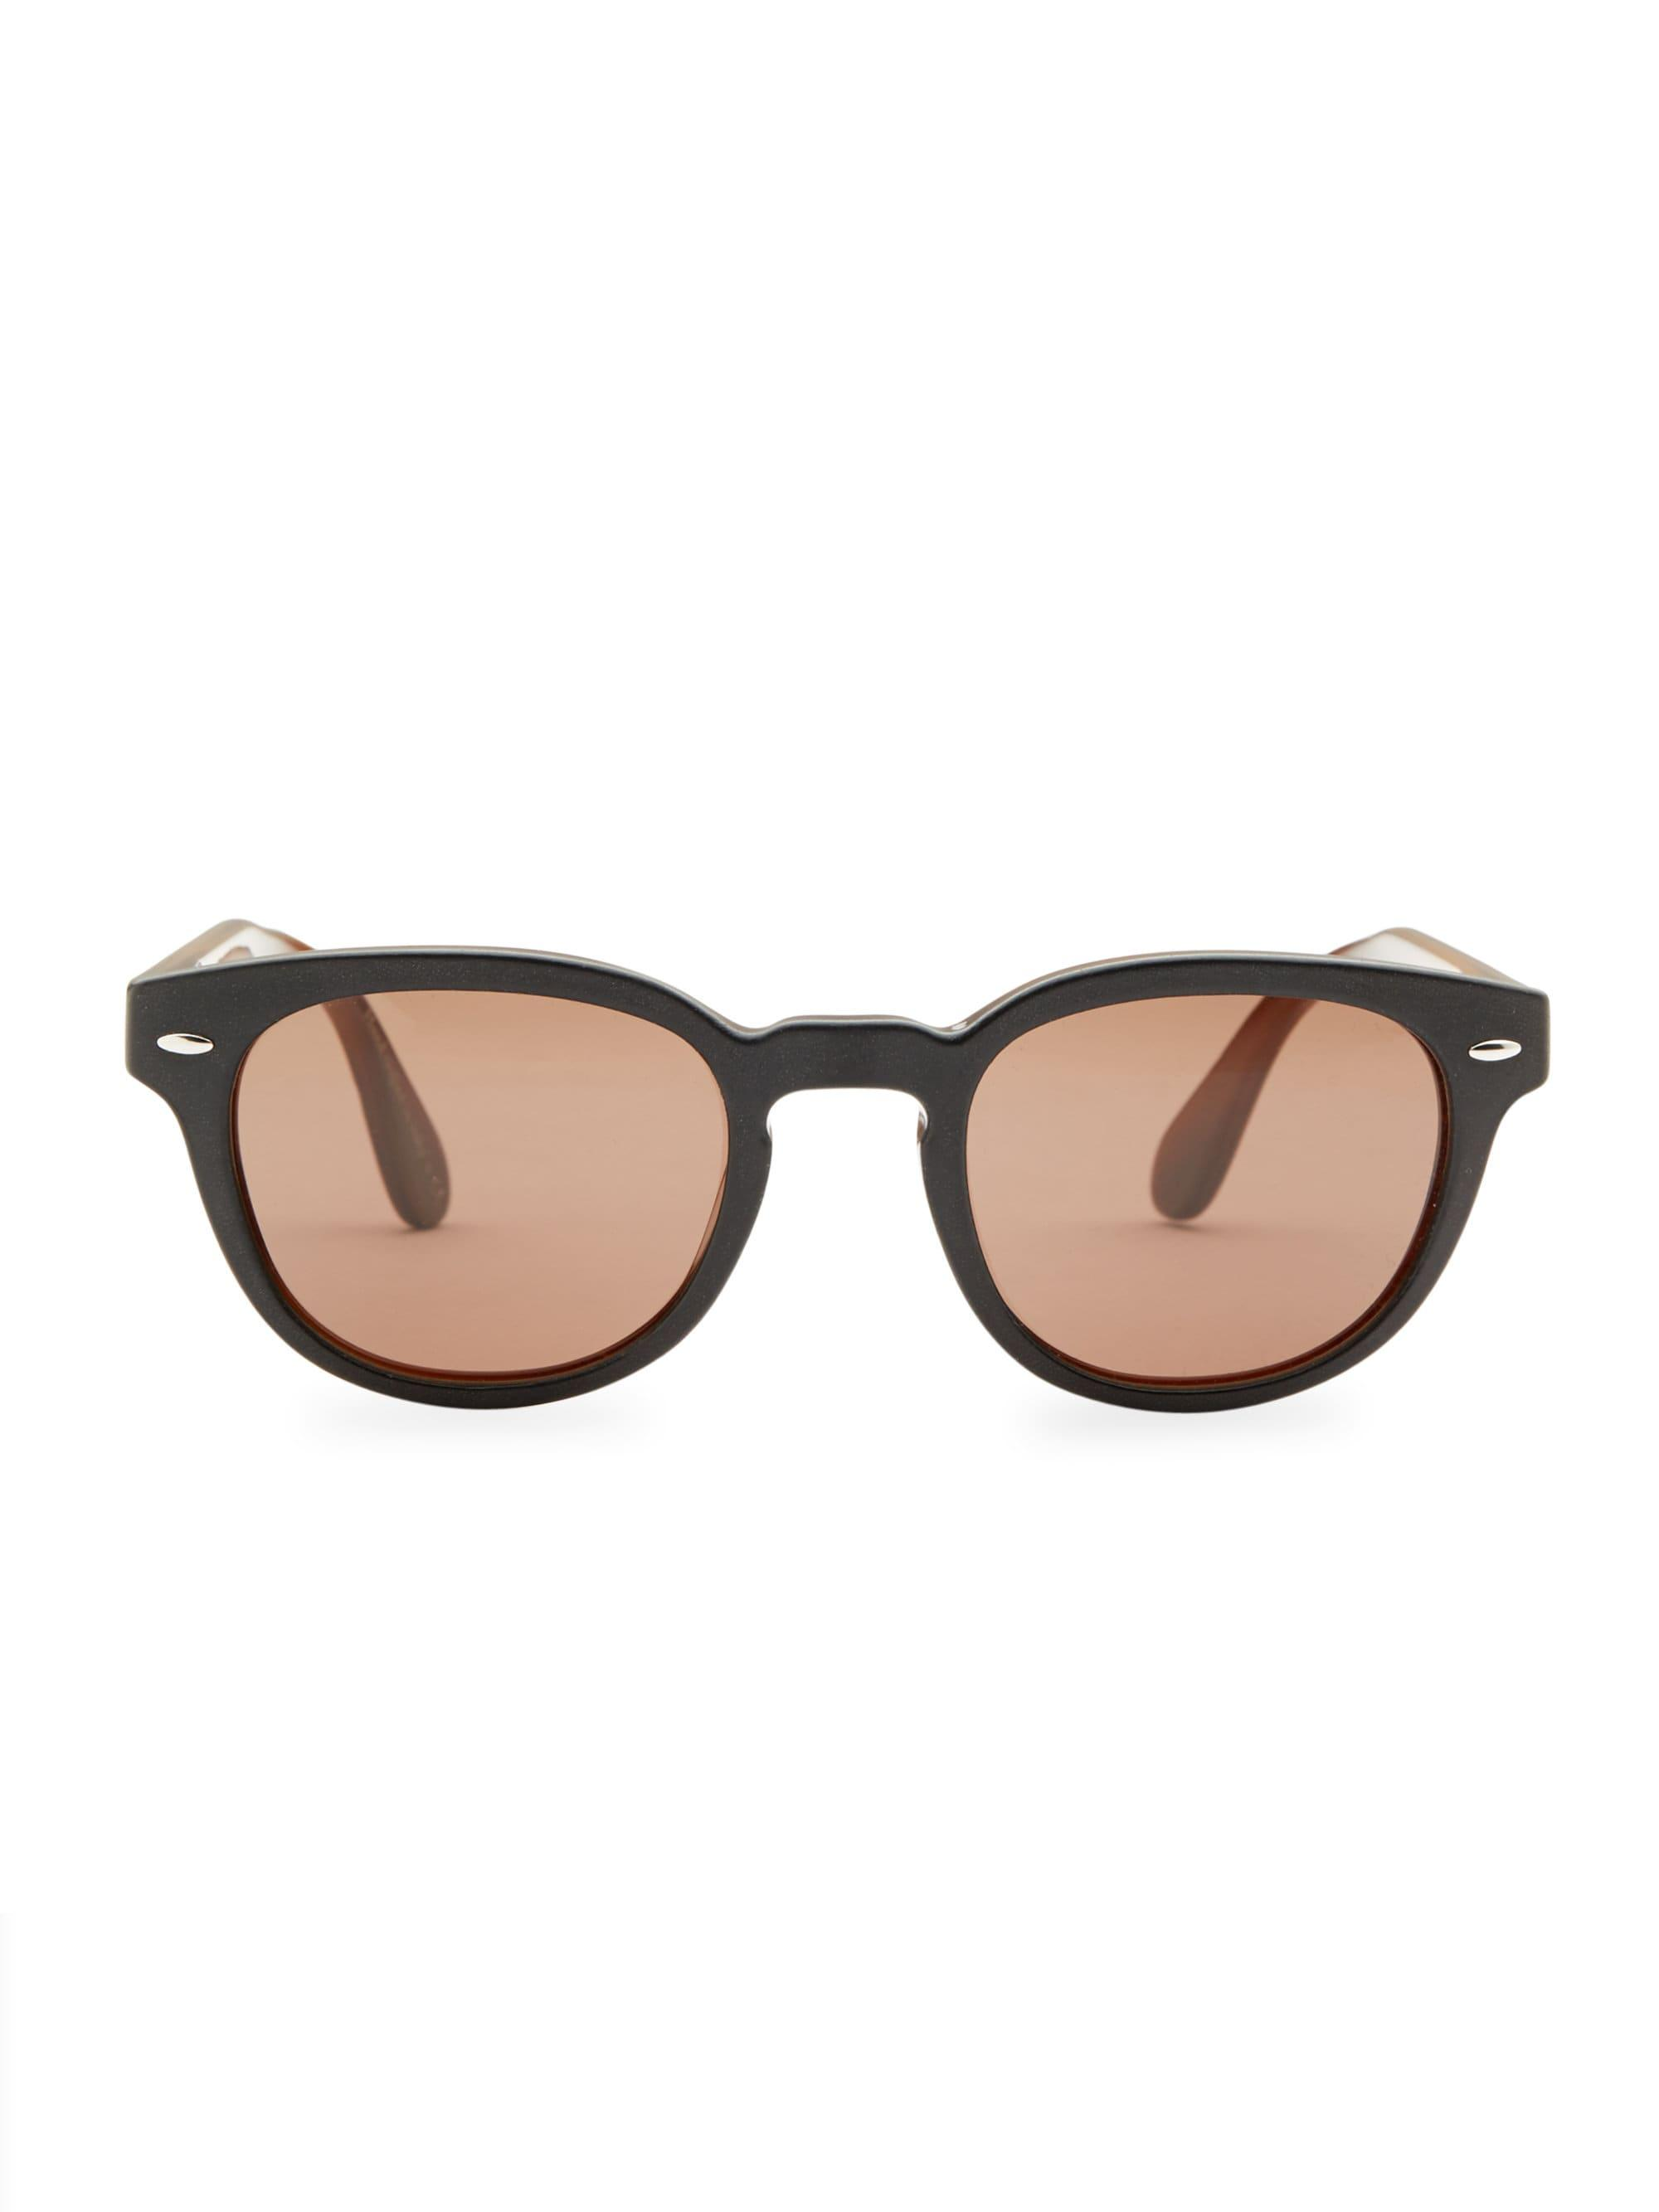 1145b2ae531b Lyst - Oliver Peoples Men s Sheldrake Leather 47mm Sunglasses ...